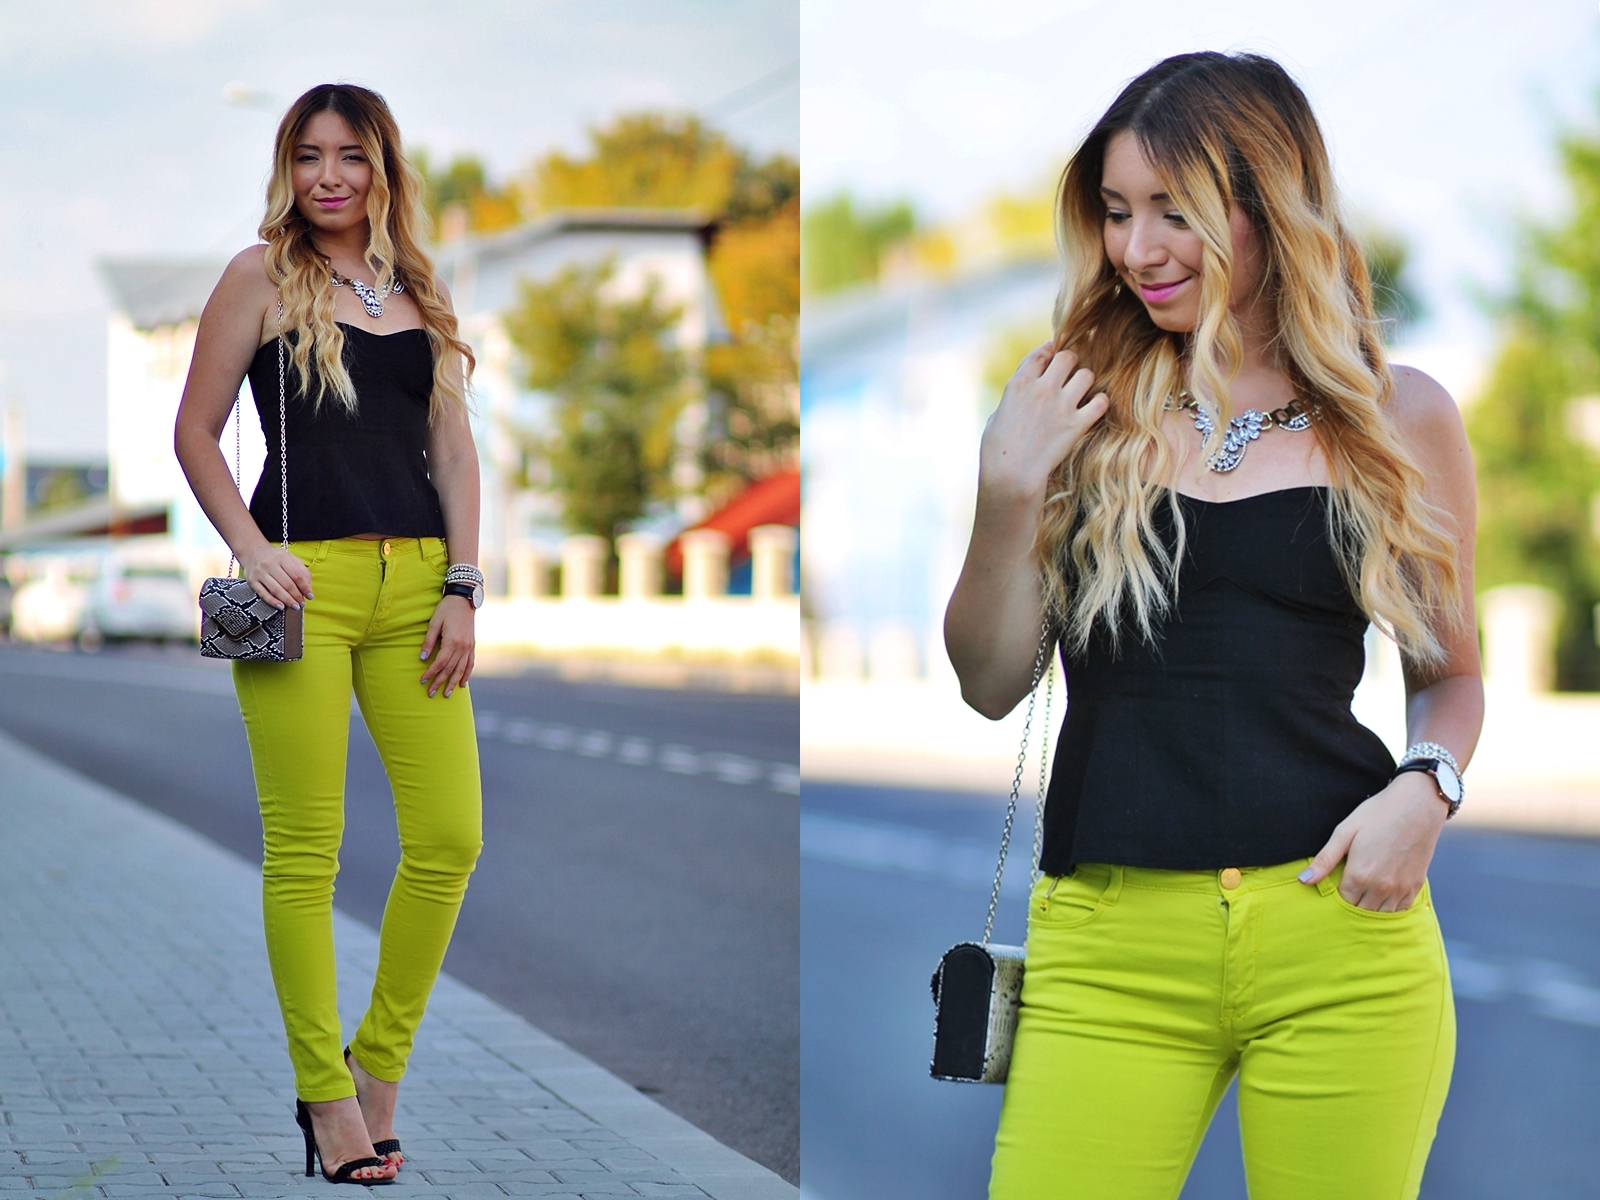 lookbook - light green pants and black top